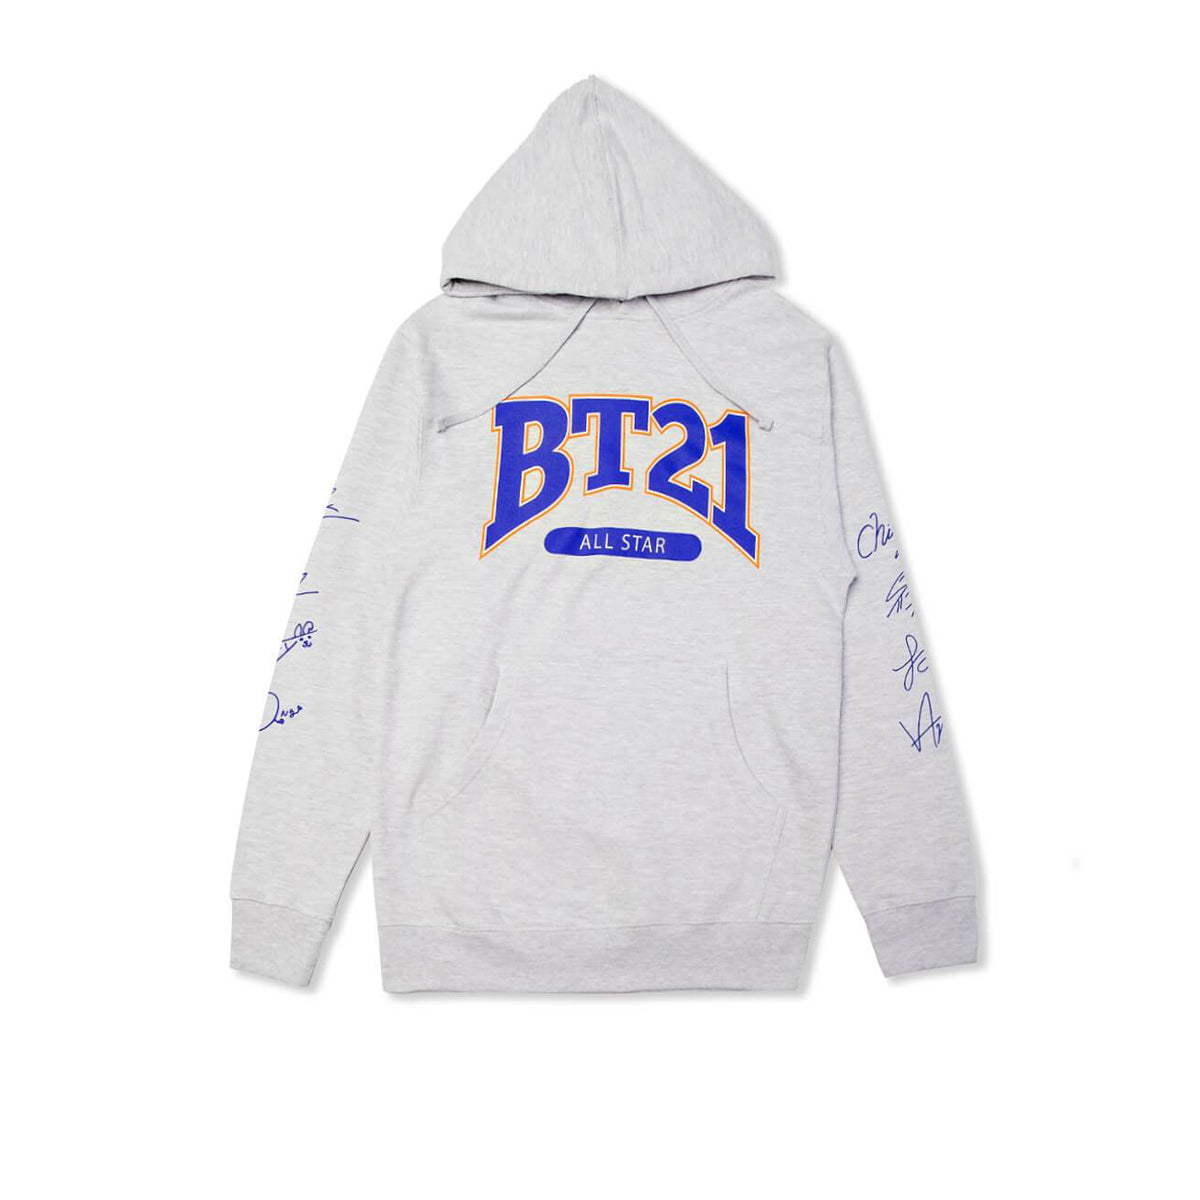 BT21 NY All Stars Hoodie w/ Signatures, Grey